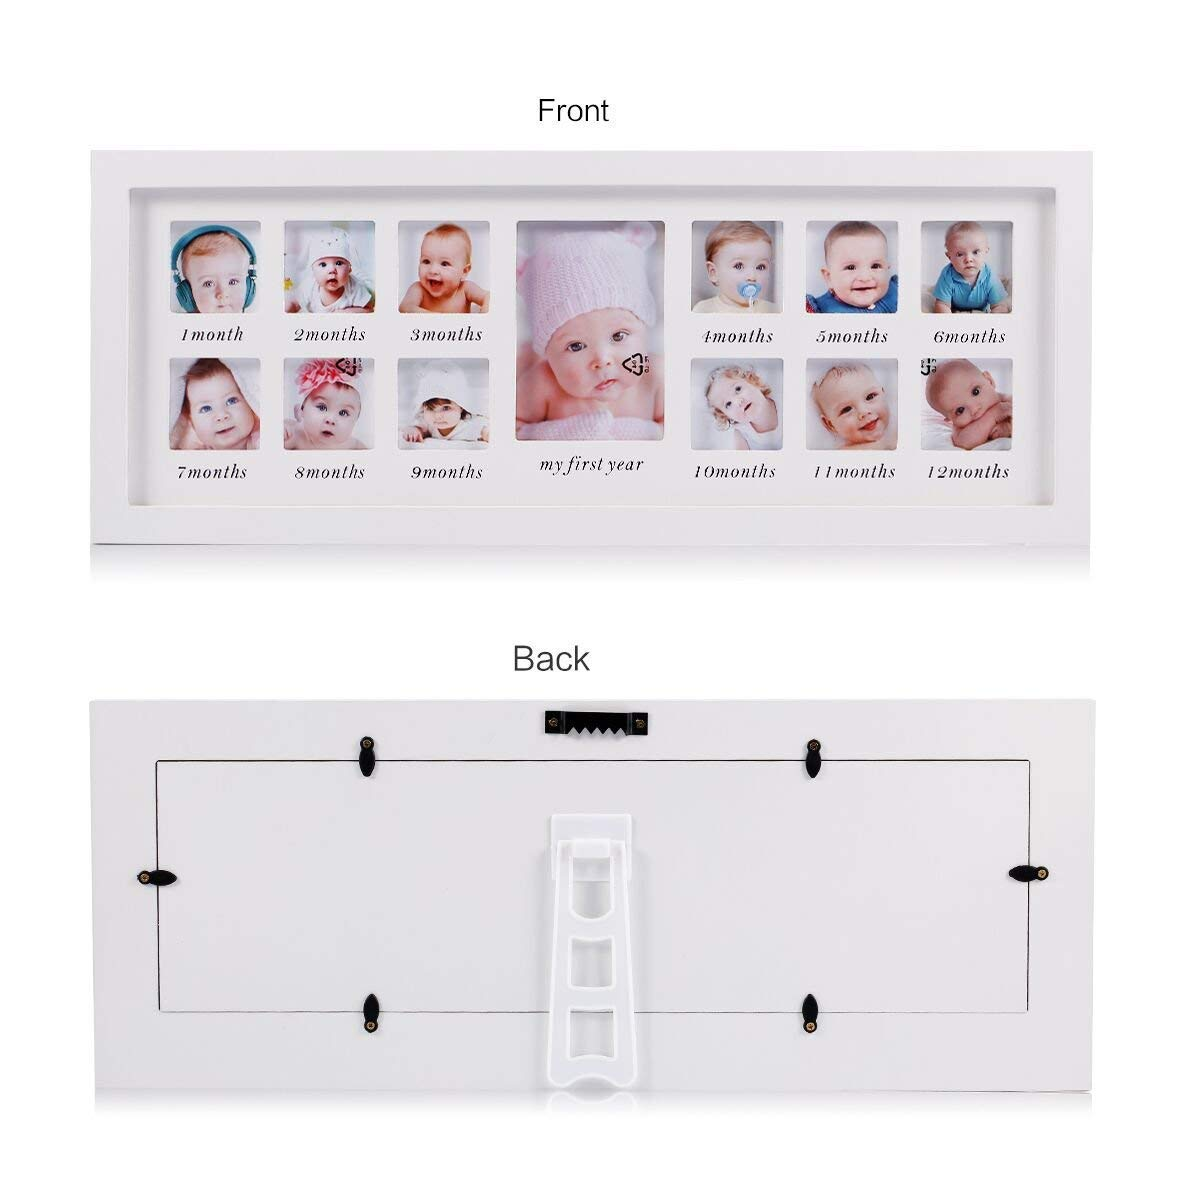 Unique Baby Gifts The Perfect Decorations for Room Wall Feibi My First Year Baby Photo Frame Newborn Baby Keepsake Frame Kit Wood Kids Wall Hanging Picture Frame 12 Month Photo Frame Black